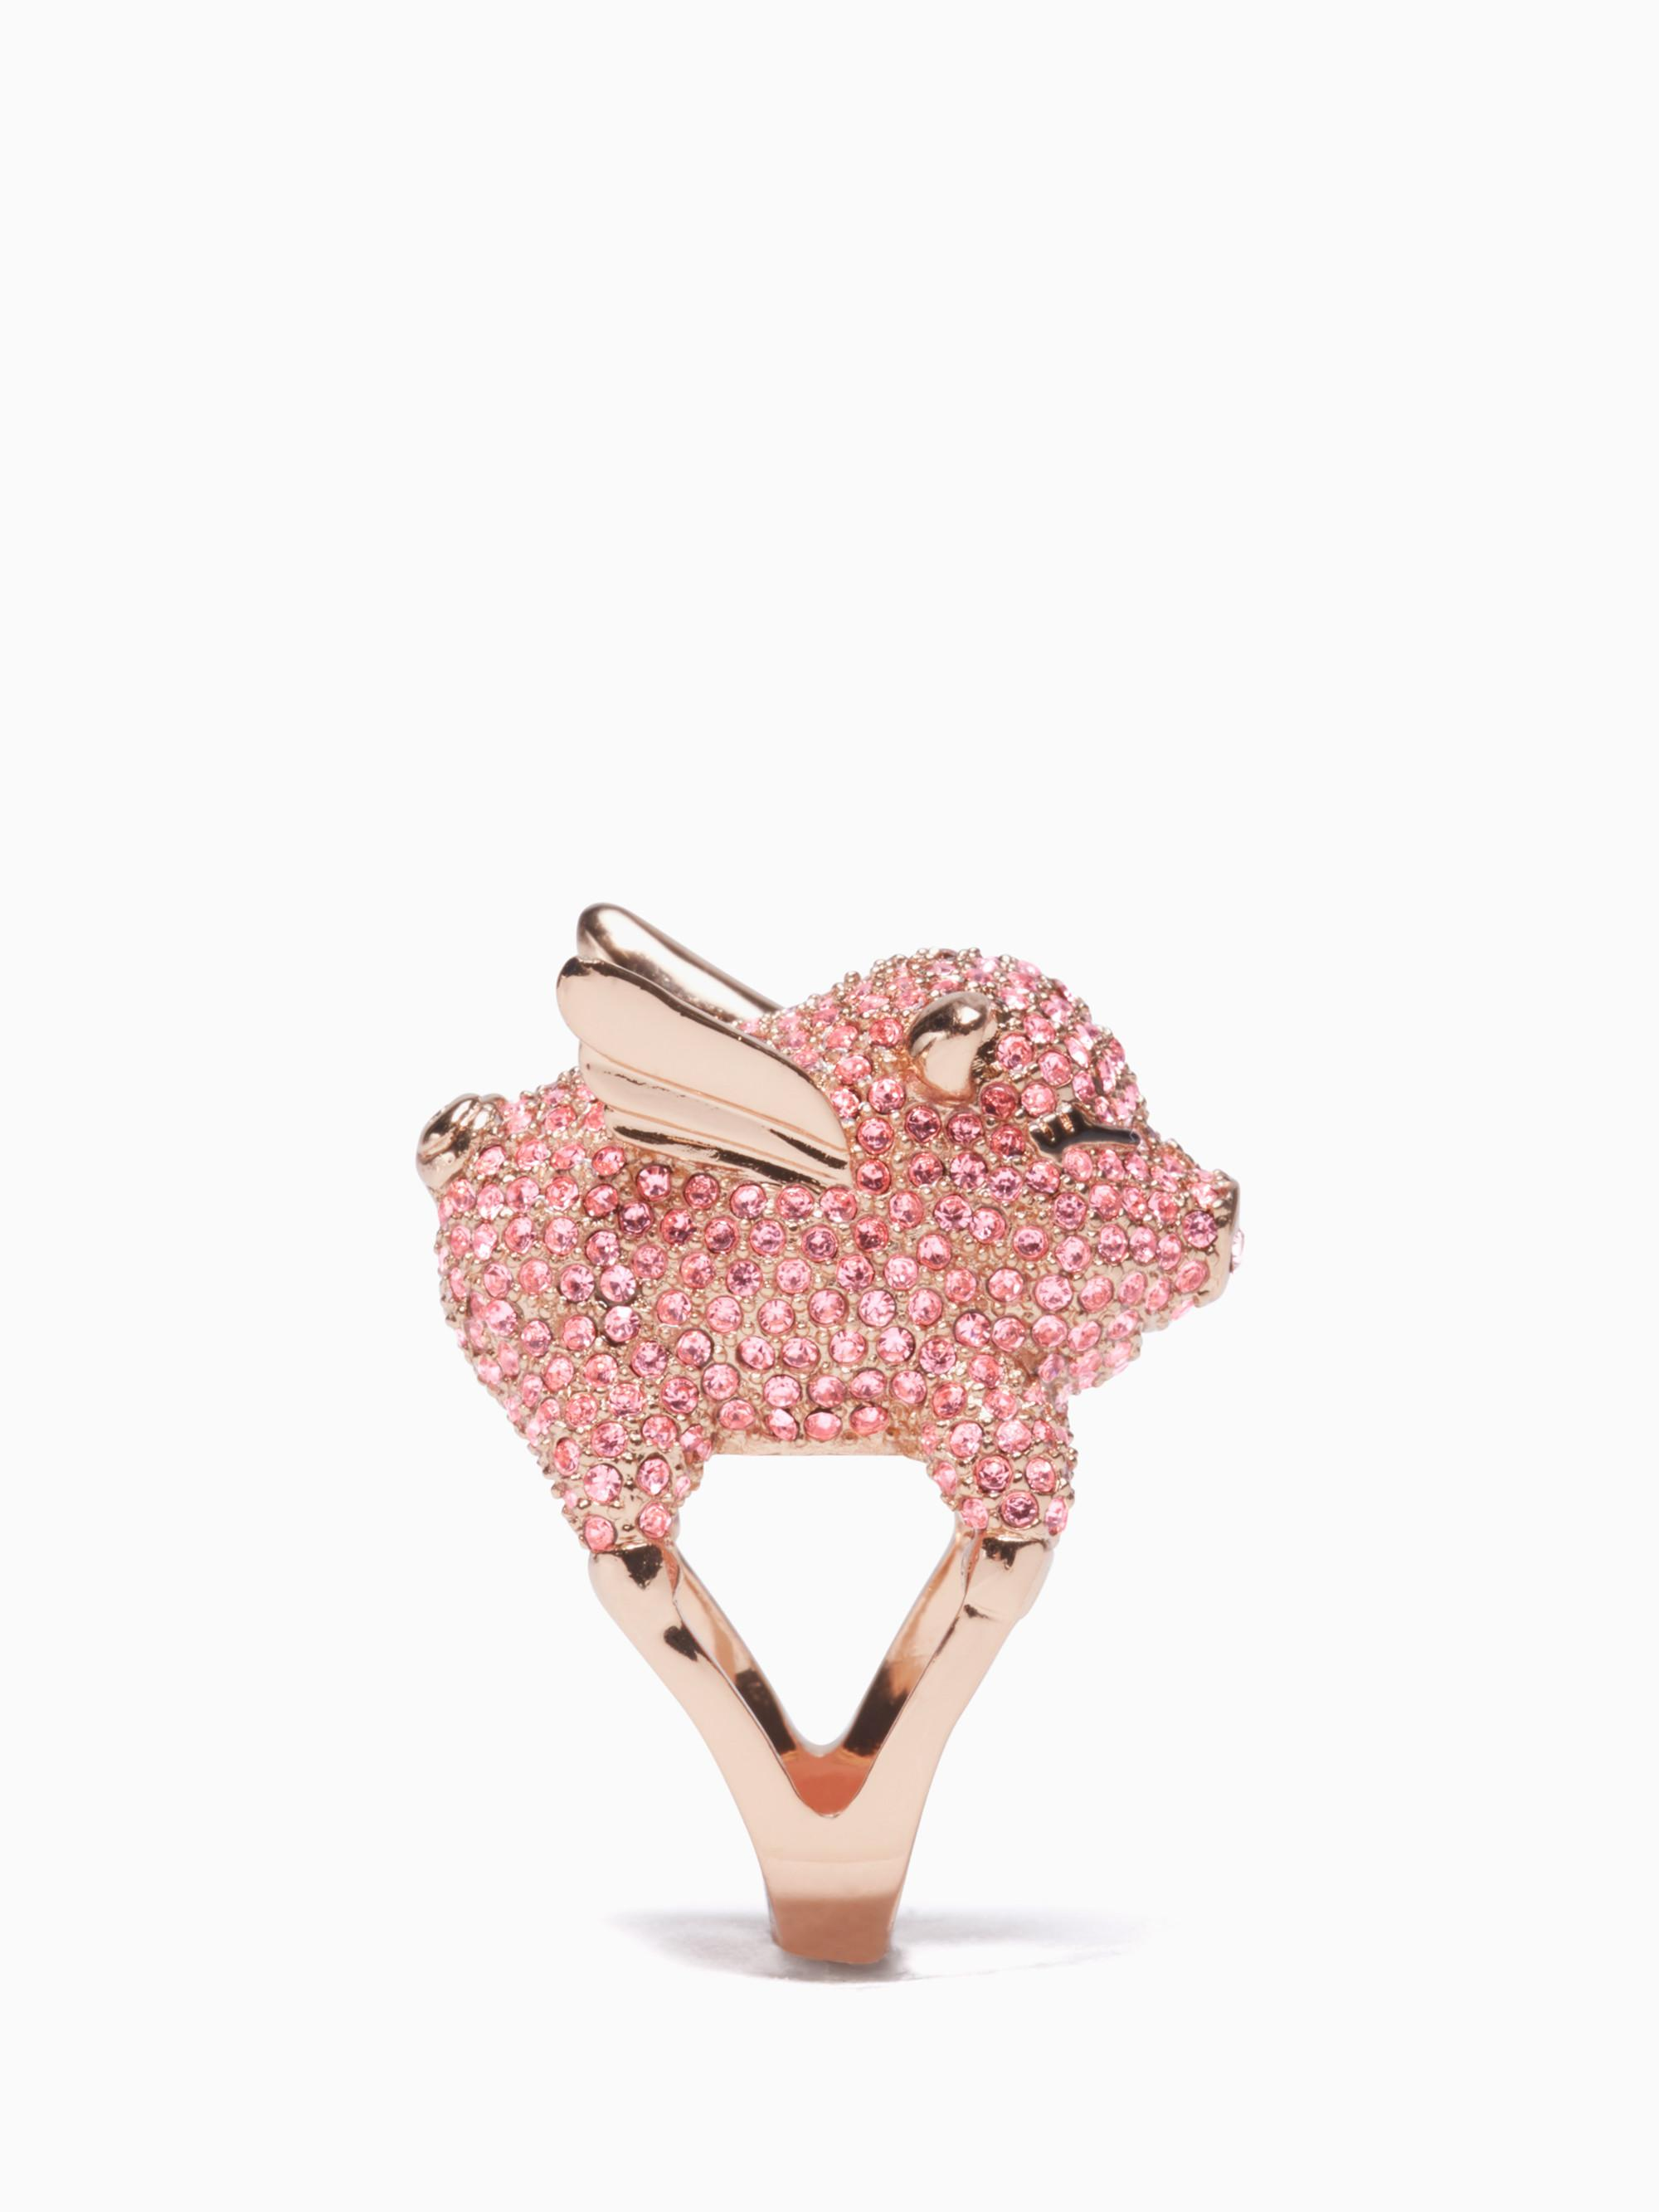 Lyst - Kate Spade New York Imagination Pave Pig Ring in Pink